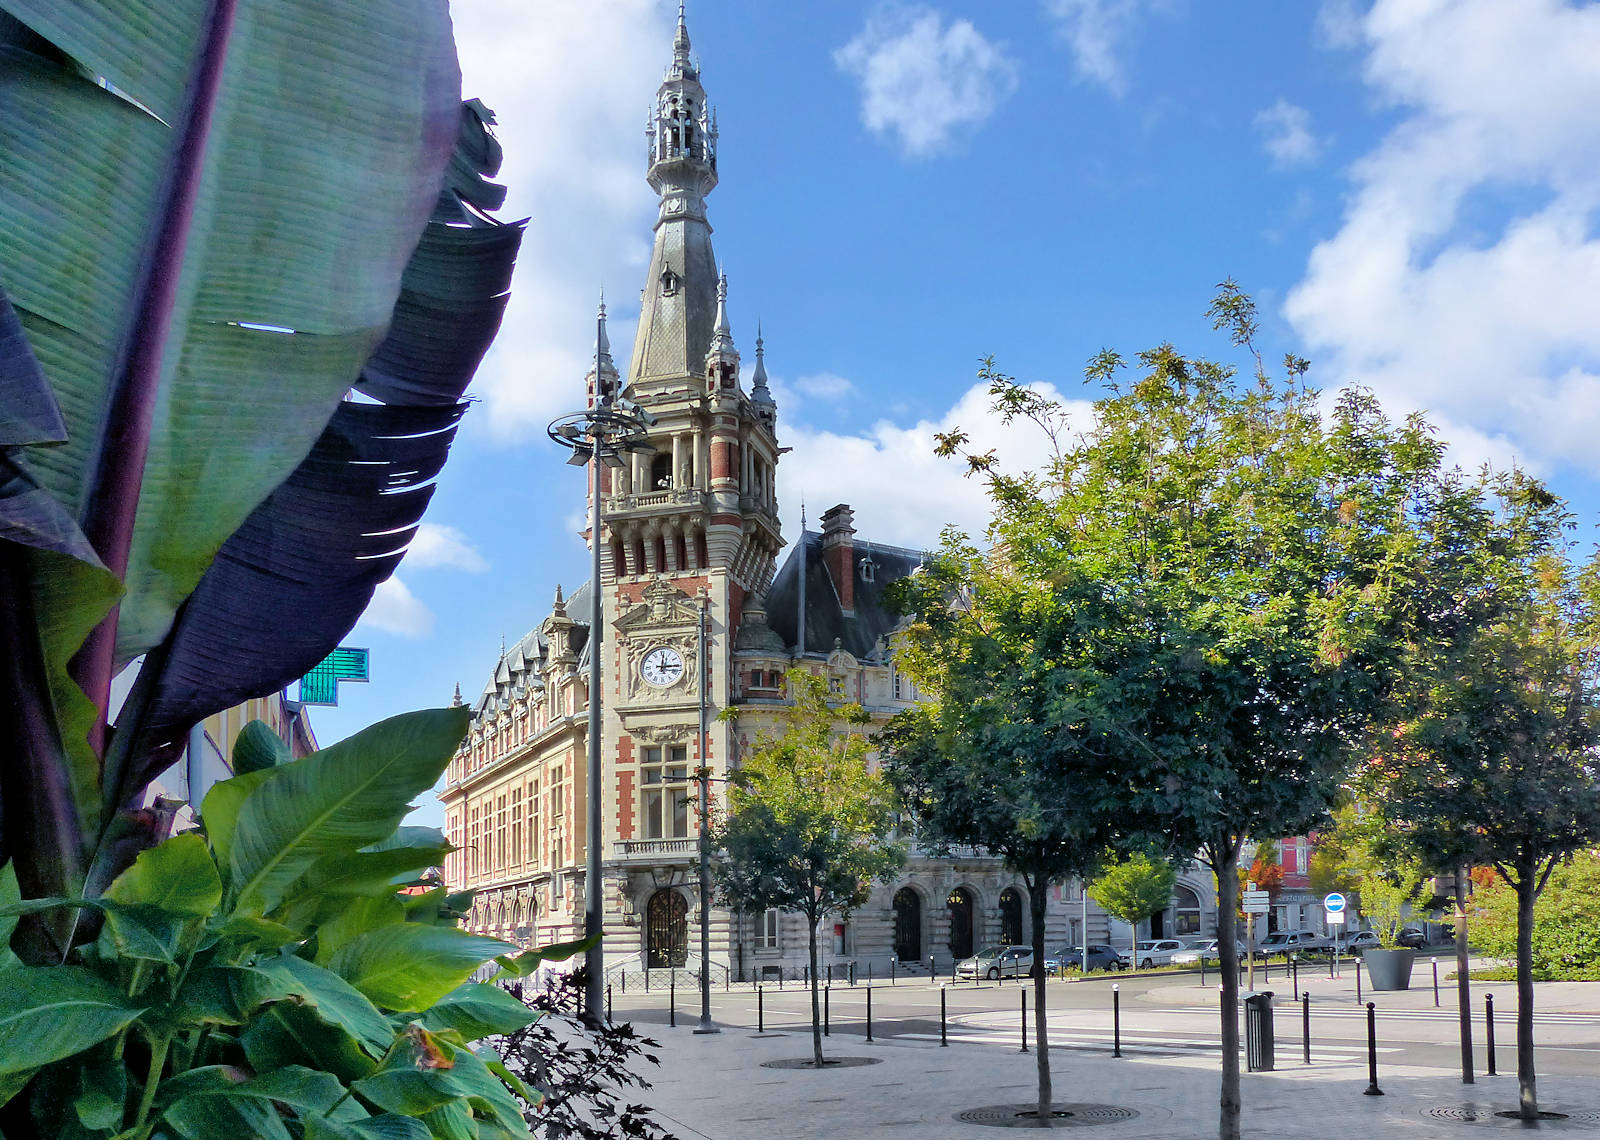 Passage Alfred Mongy Tourcoing - Place Roussel et Beffroi